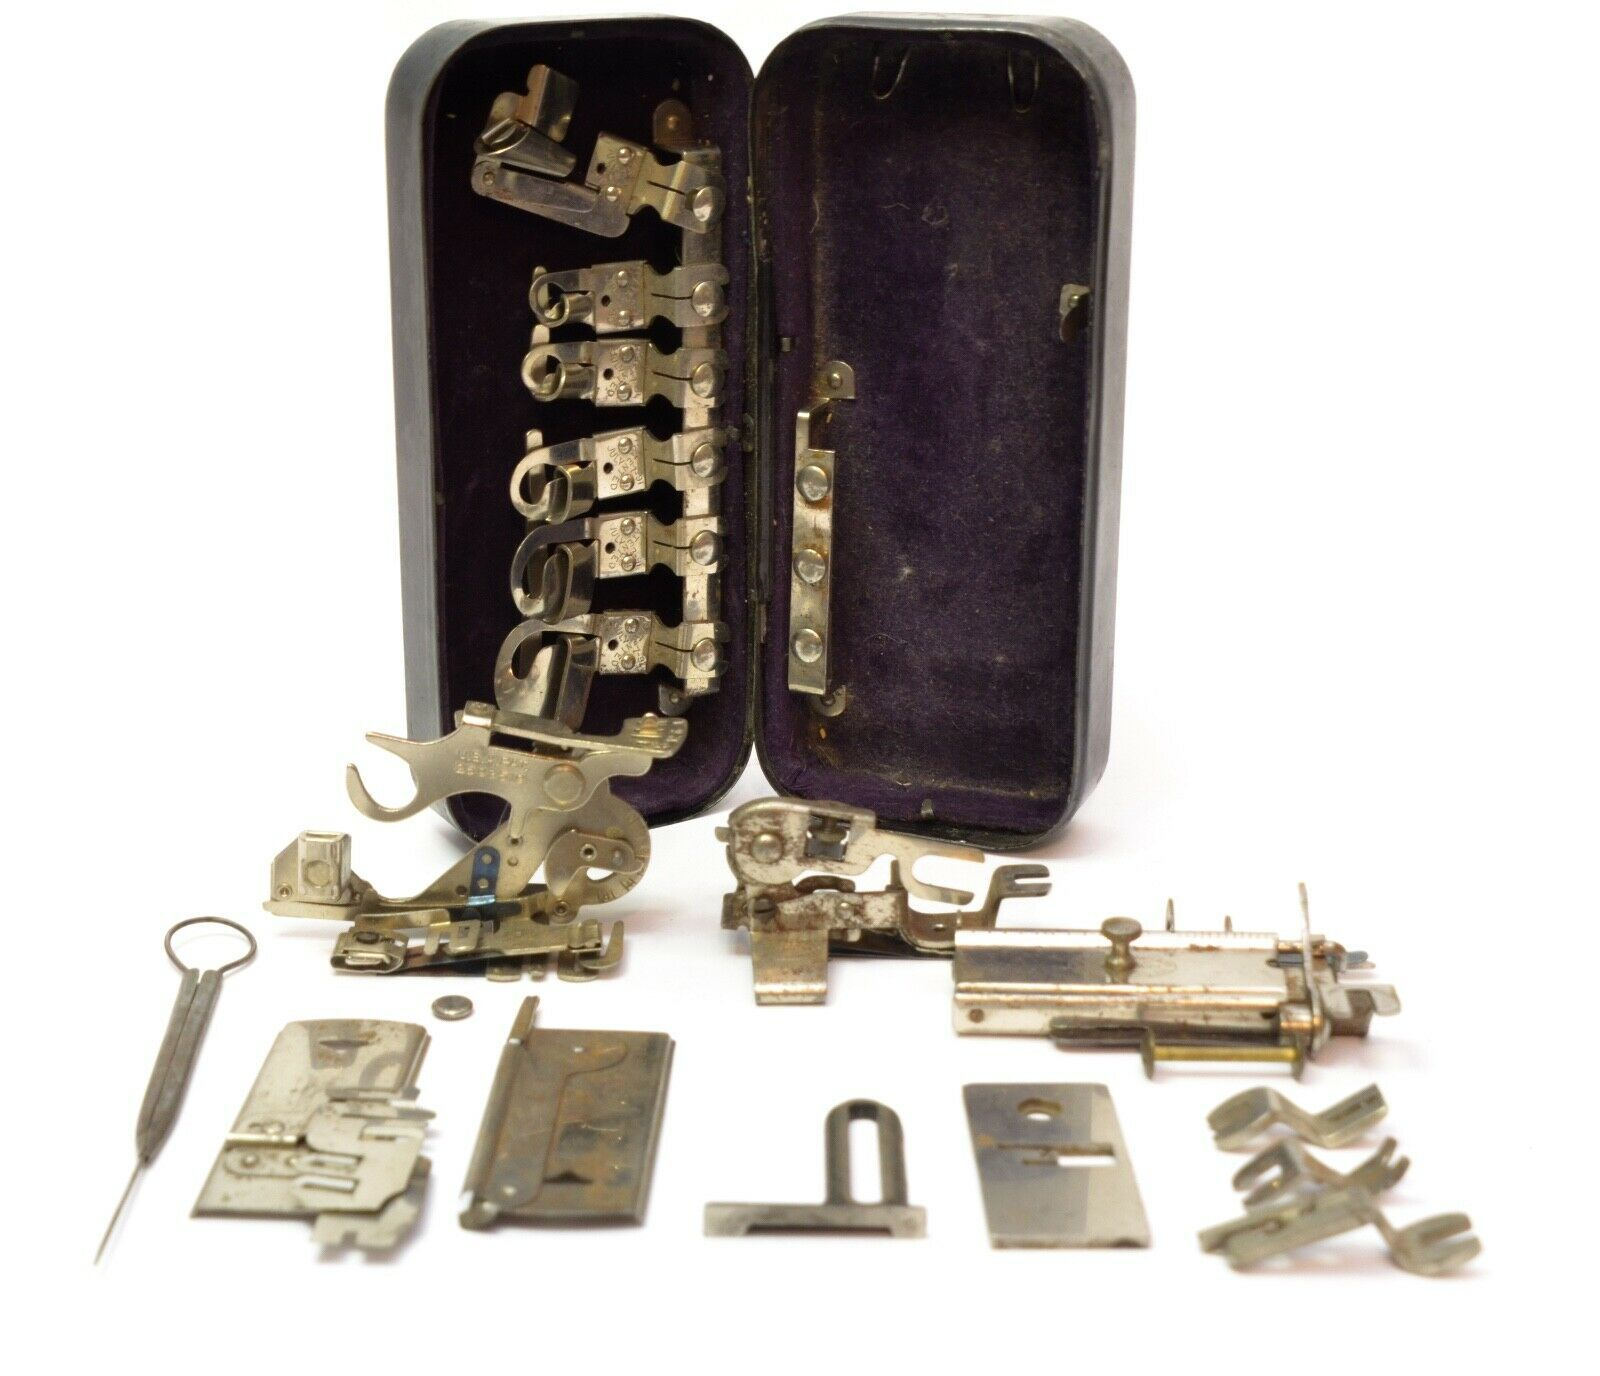 Vintage Rotary Sewing Machine Greist Attachments Mix Parts with Metal Box - $11.85